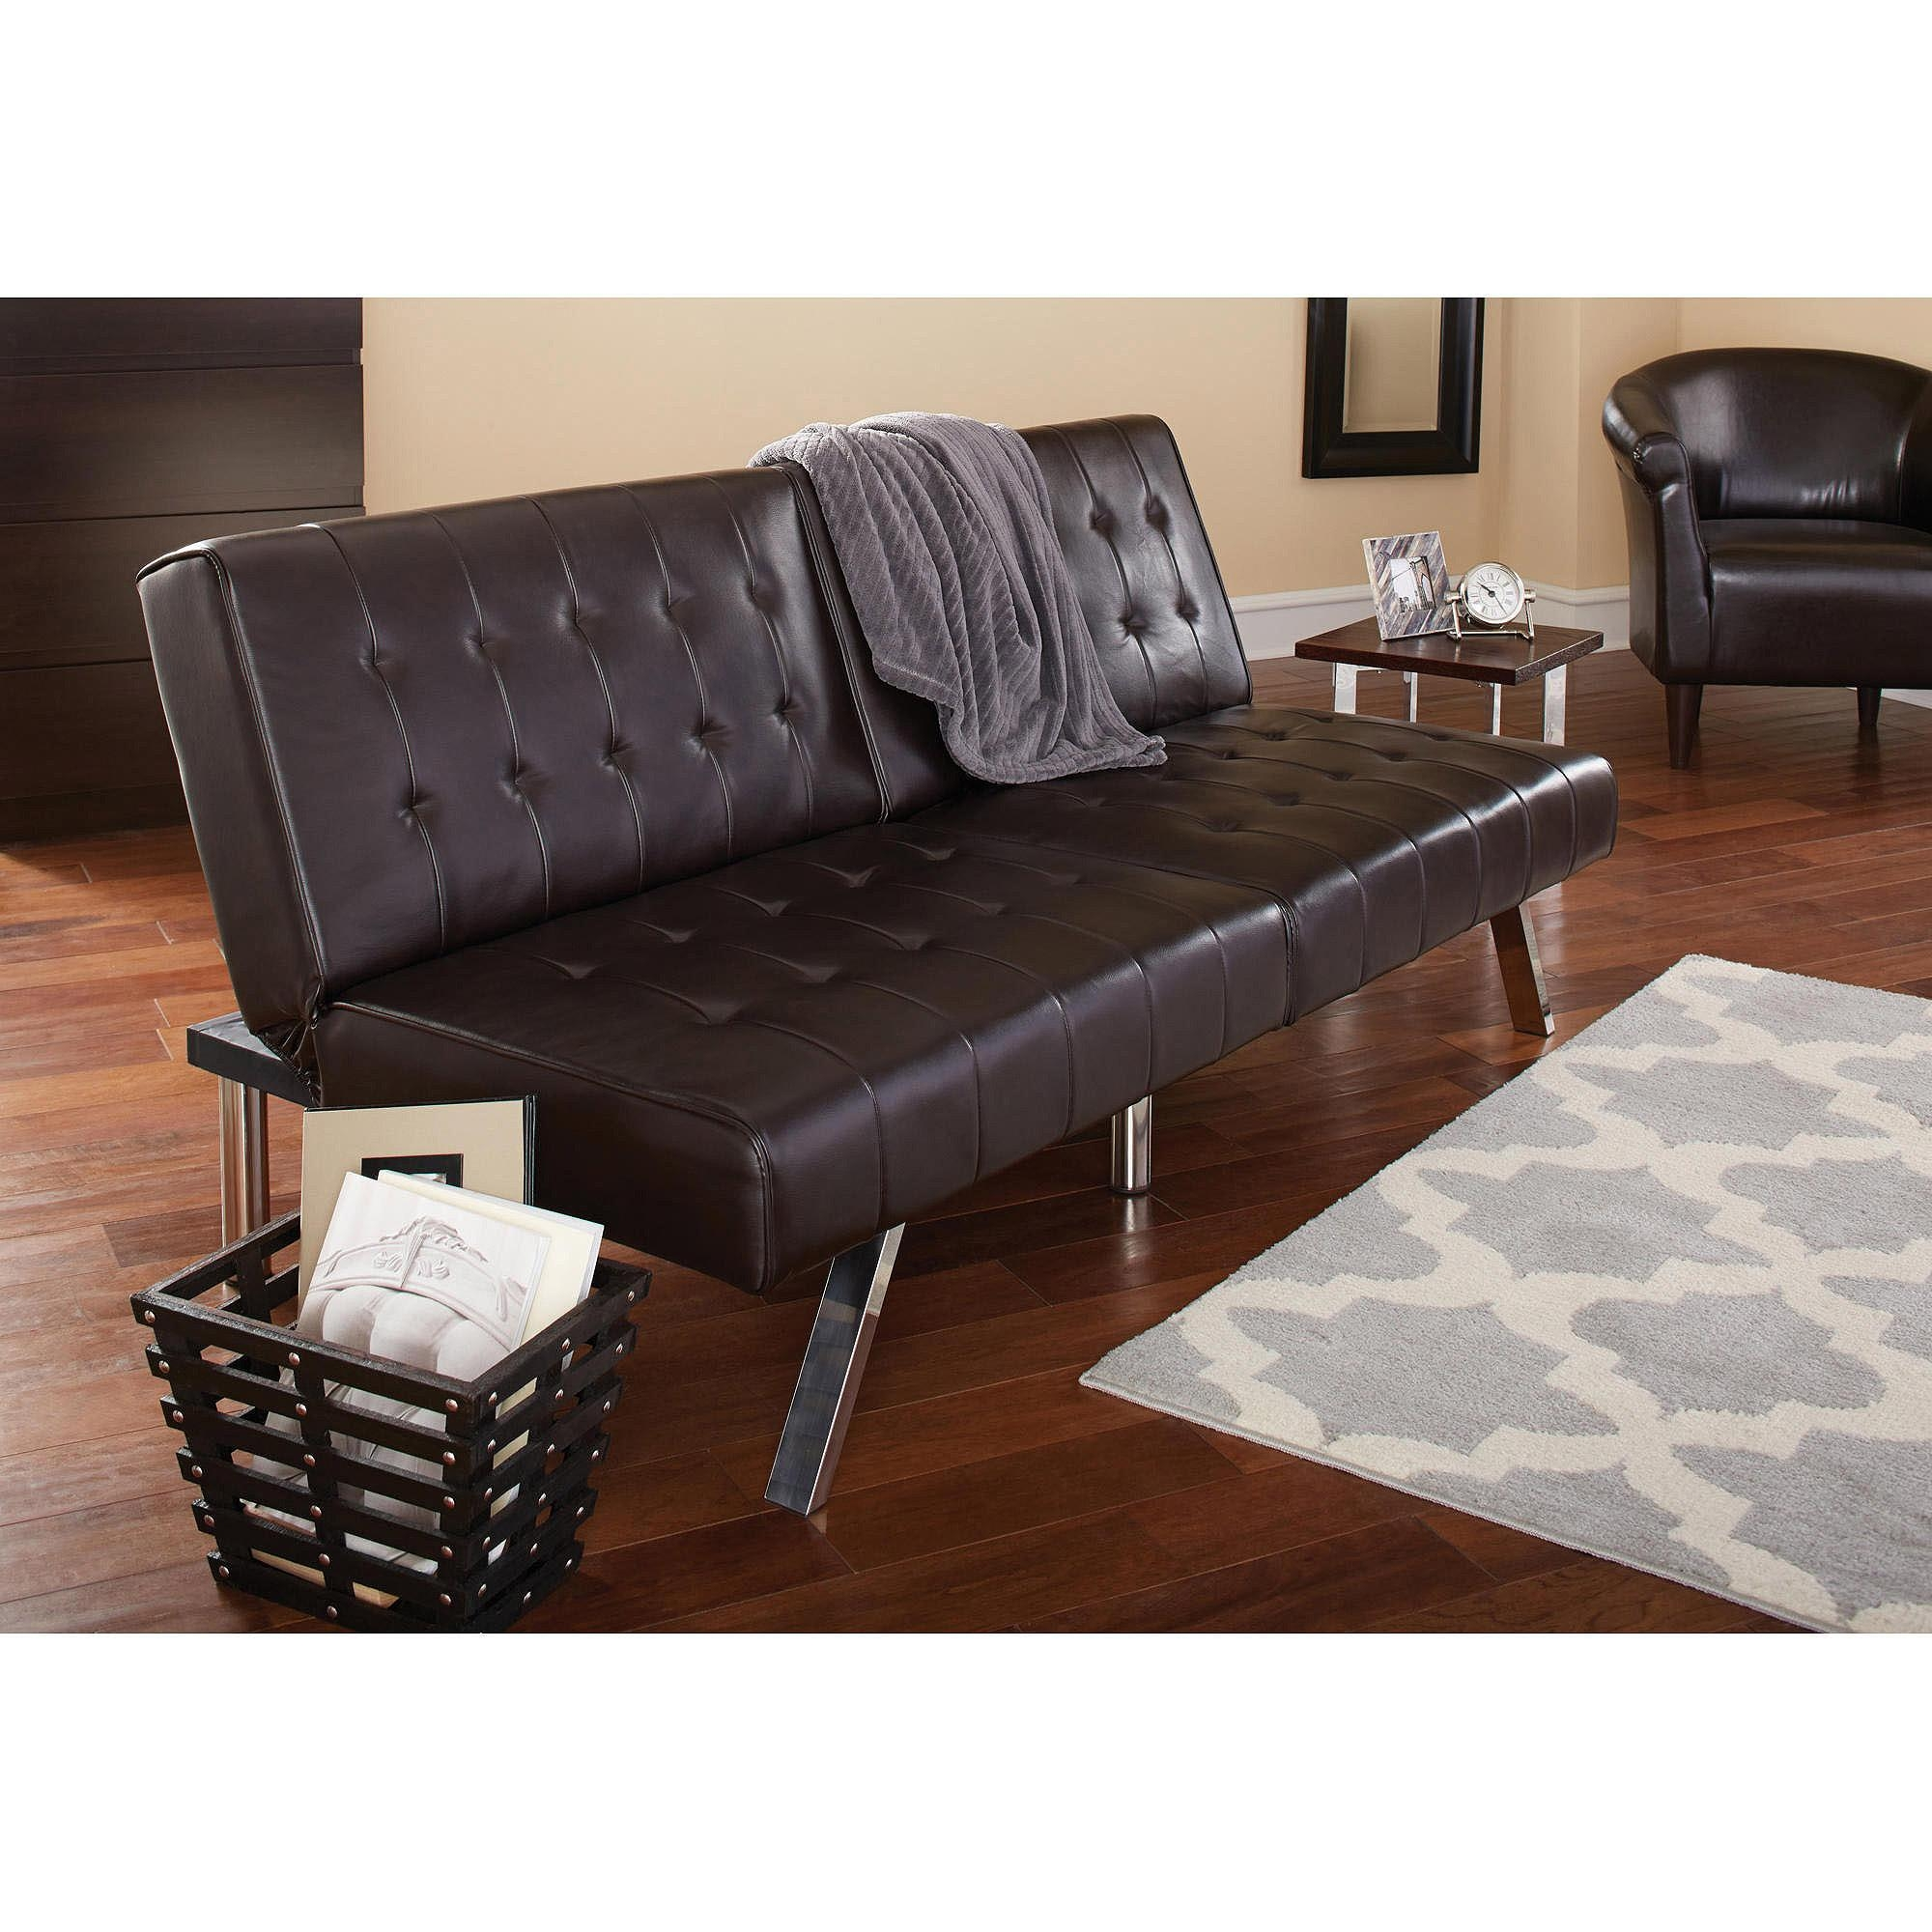 Mainstays Morgan Faux Leather Tufted Convertible Futon, Brown Throughout Faux Leather Futon Sofas (View 4 of 20)